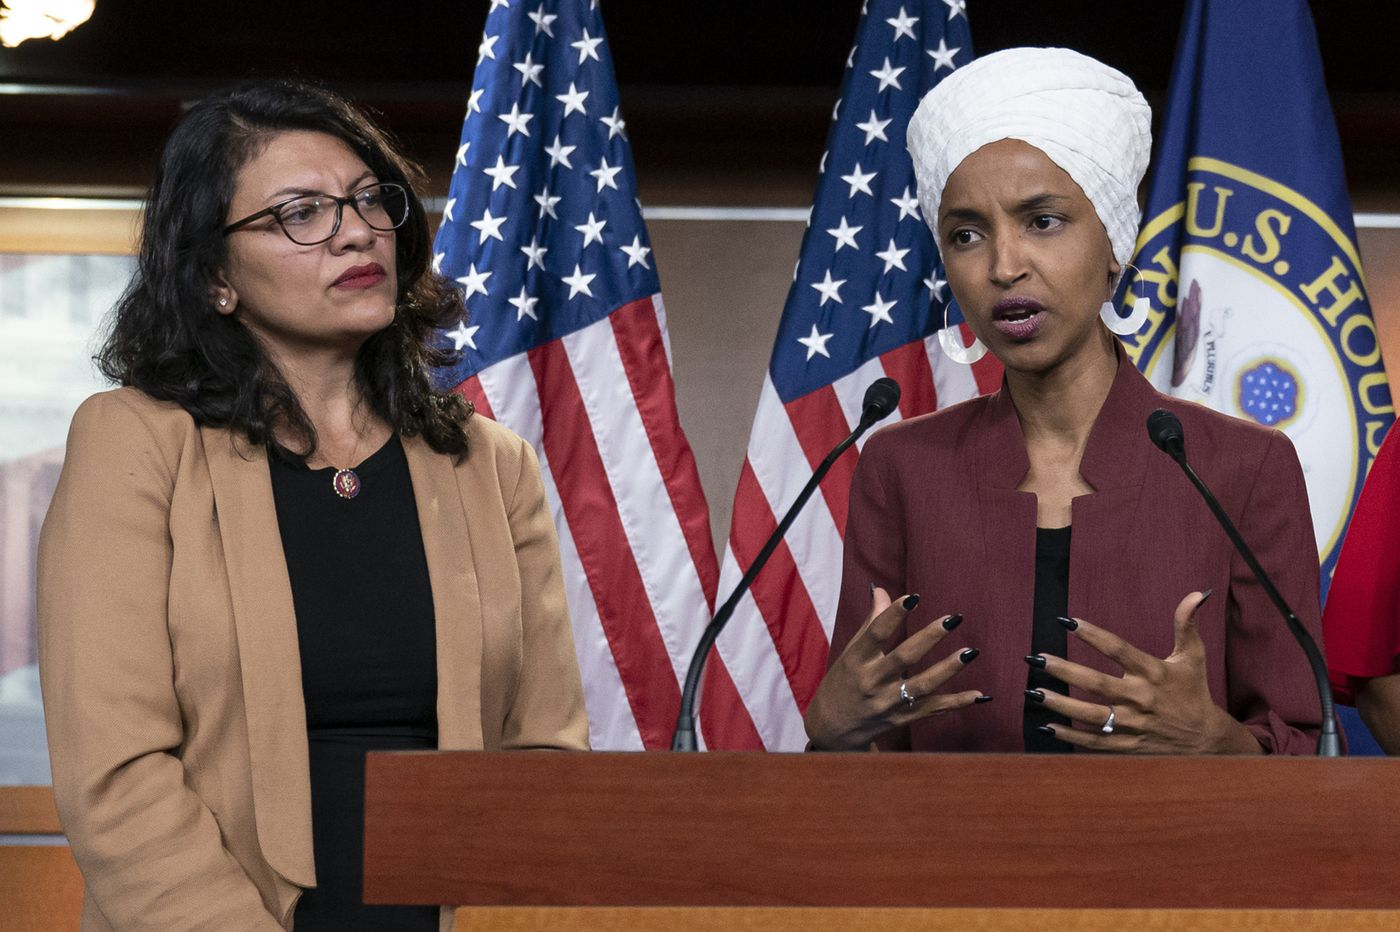 Reps. Ilhan Omar and Rashida Tlaib to discuss Israel, Palestine travel restrictions